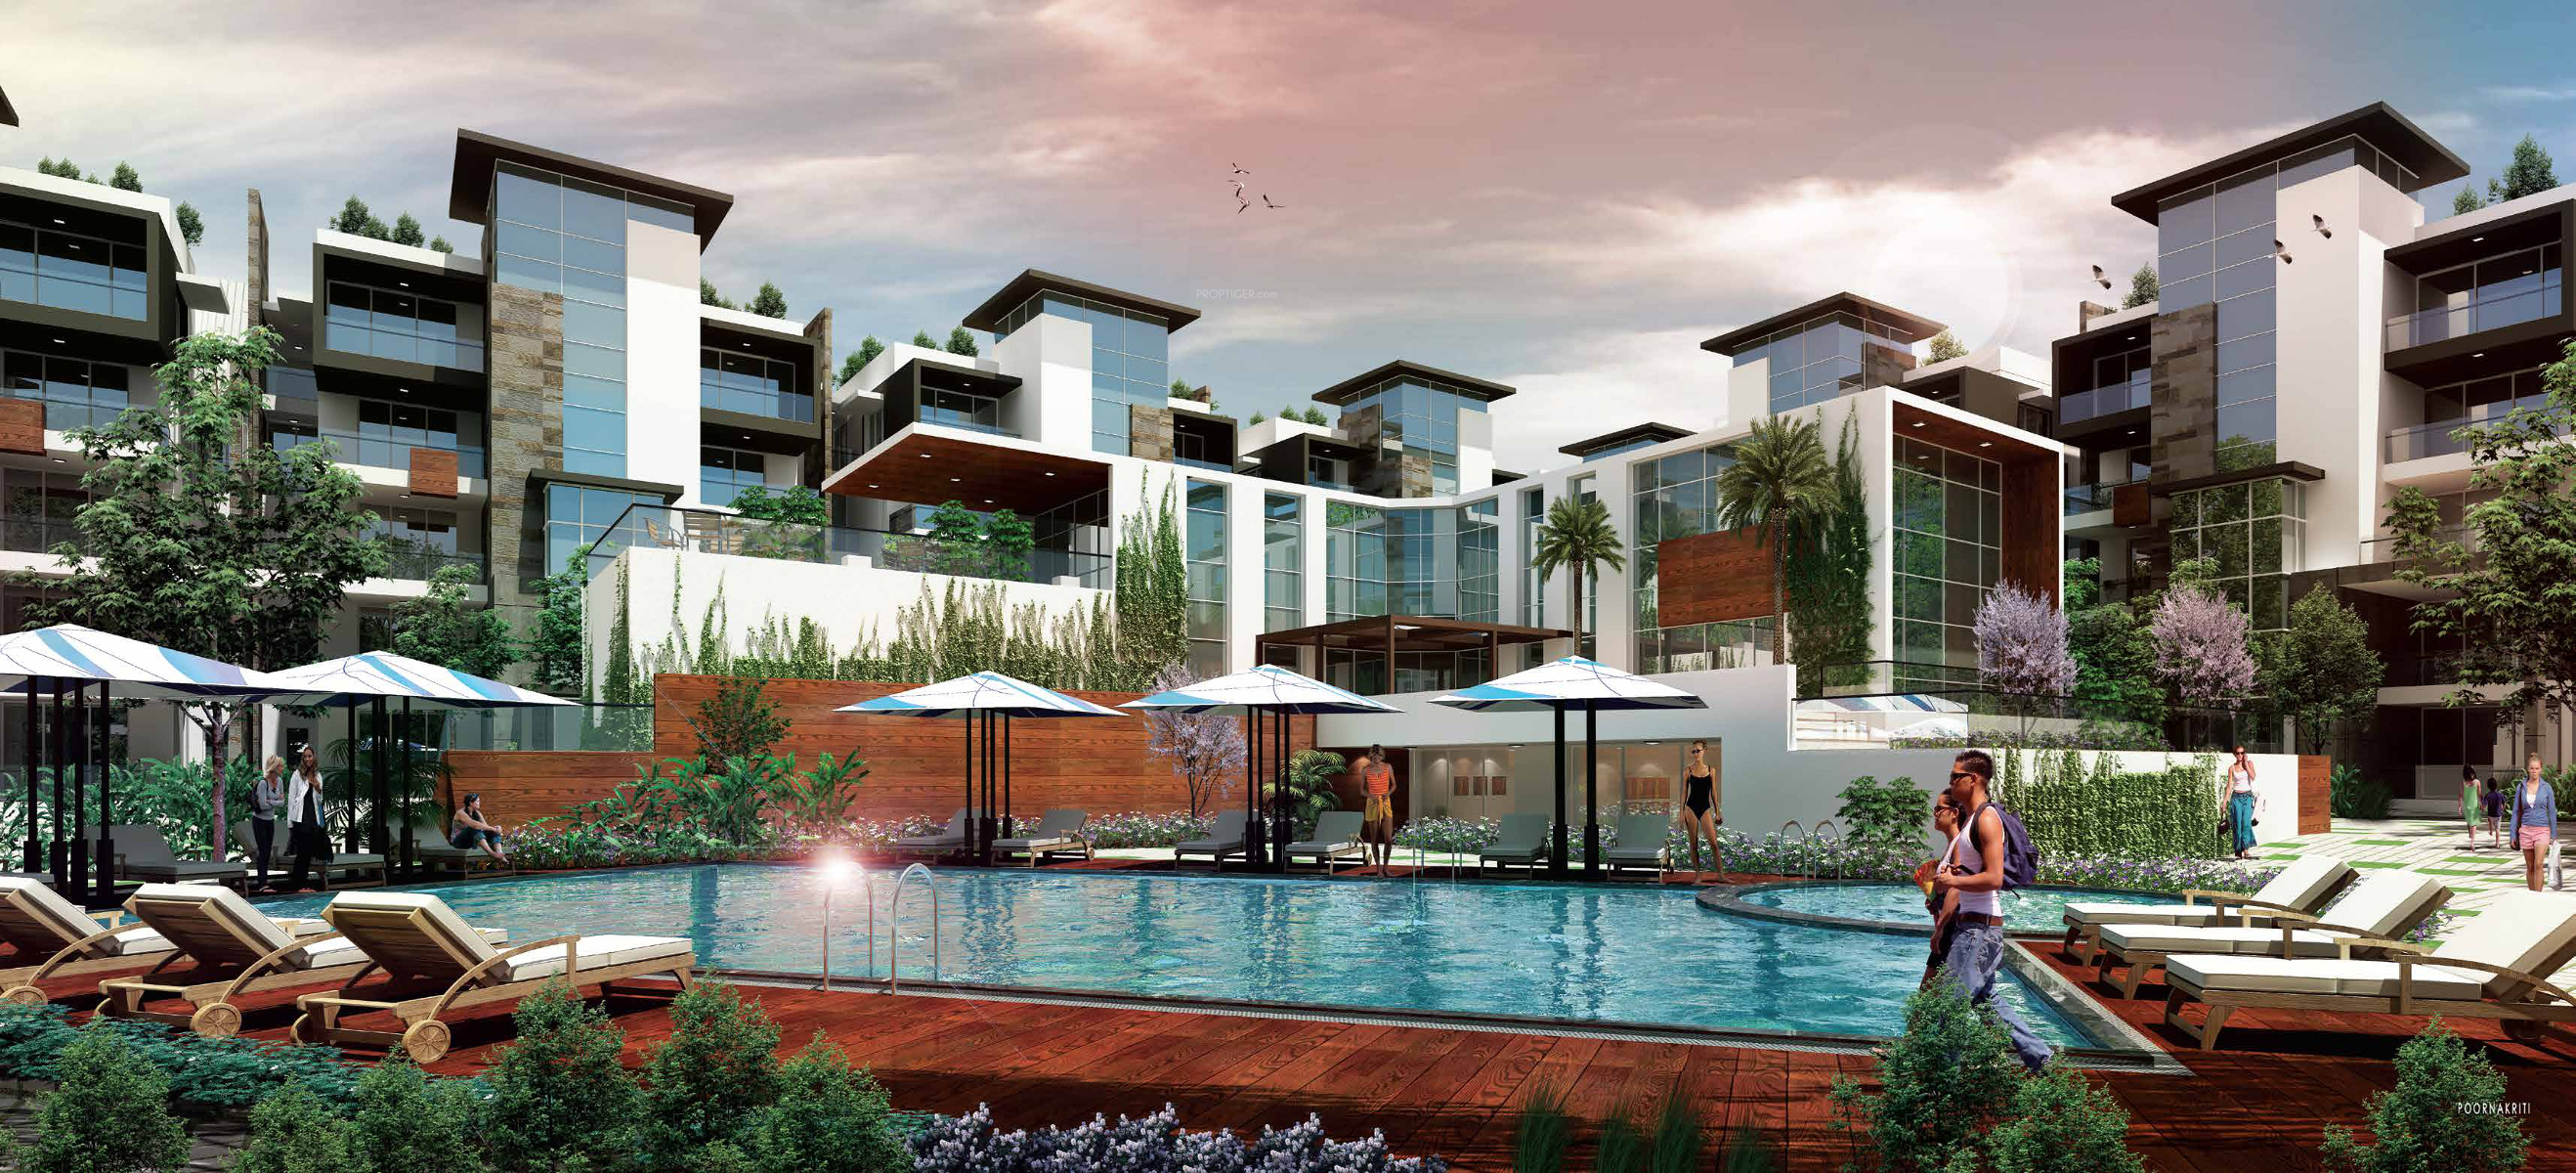 3382 Sq Ft 4 Bhk 4t Apartment For Sale In Arun Shelters